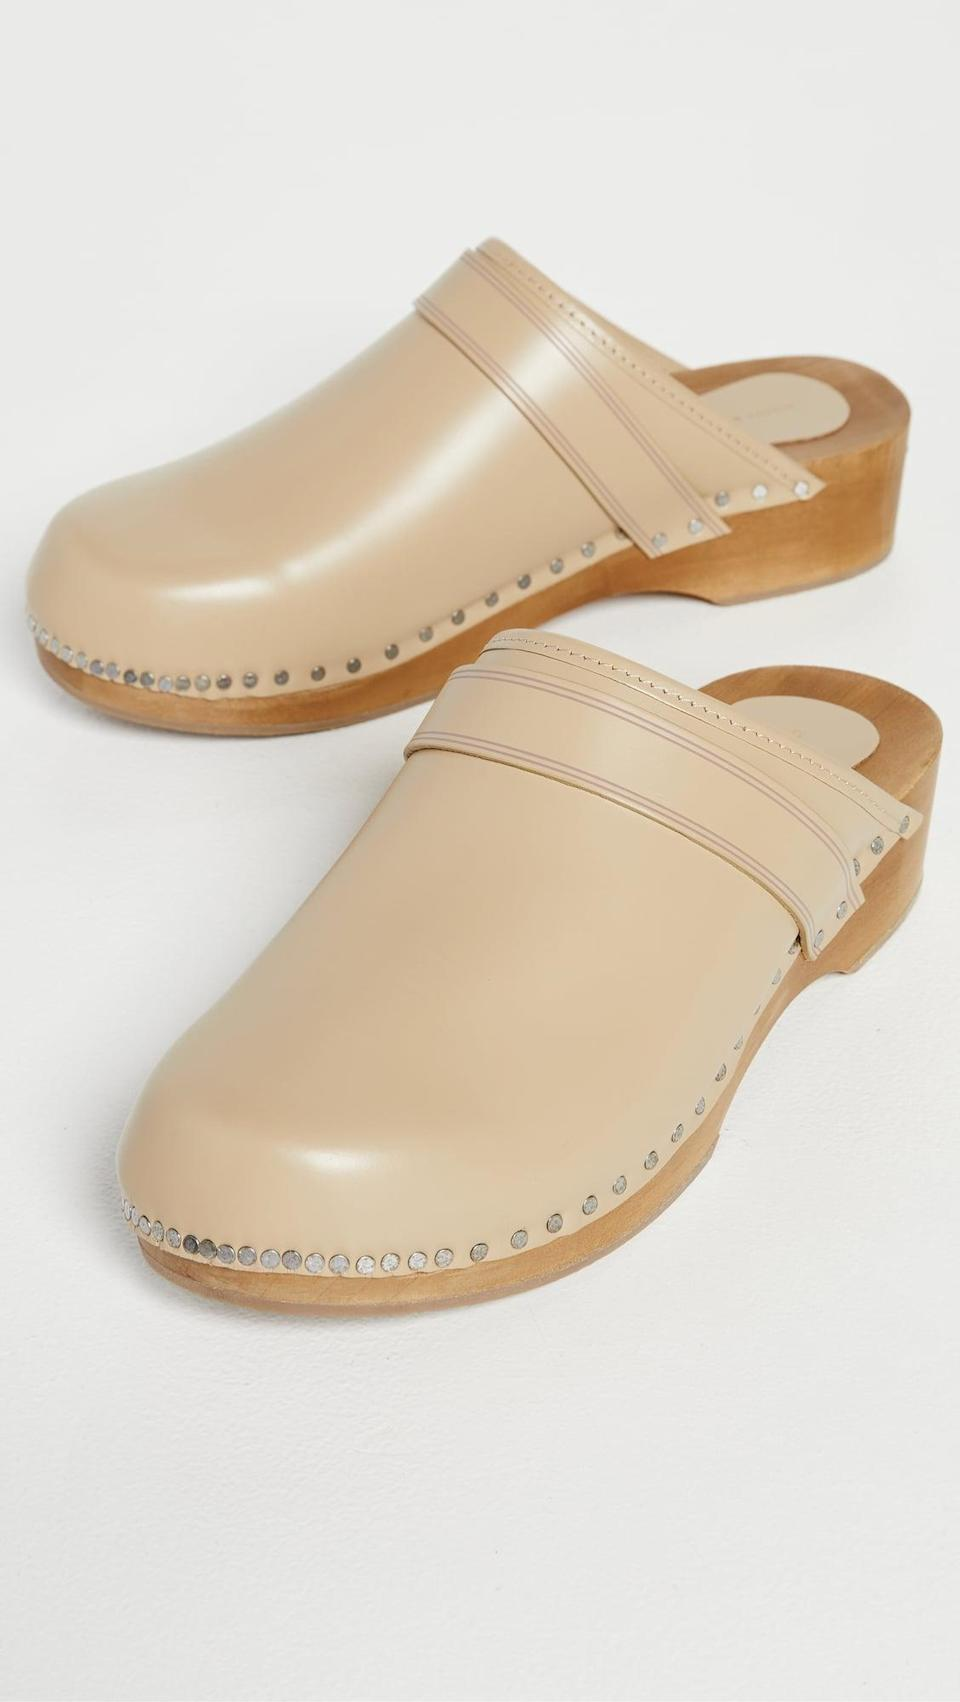 <p>We can't help but love these <span>Isabel Marant Thalie Clogs</span> ($430). The stud detailing is too cute.</p>